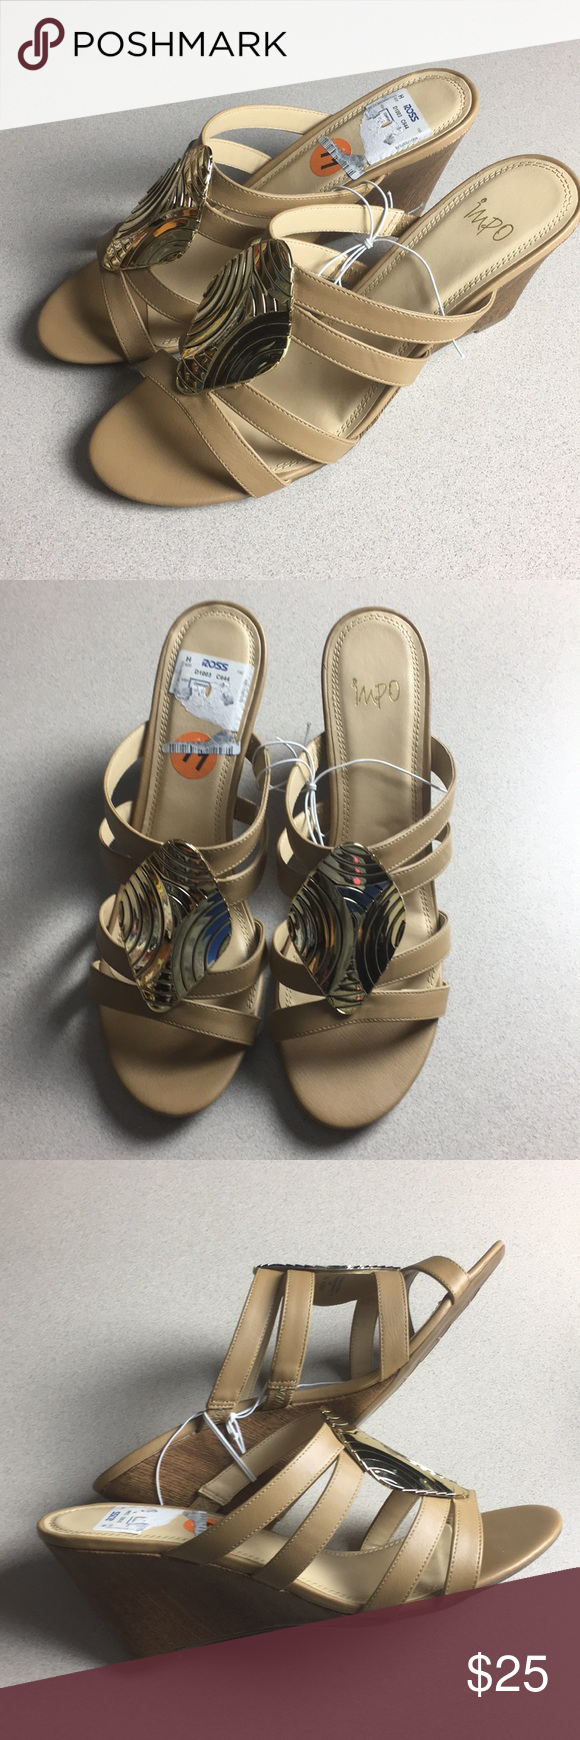 5ee6f58a3 Brand new Impo wedge style sandals Brand new Impo gold wedge style sandals  heels shoes. Says Size 11 but more like 10. Looks really beautiful.